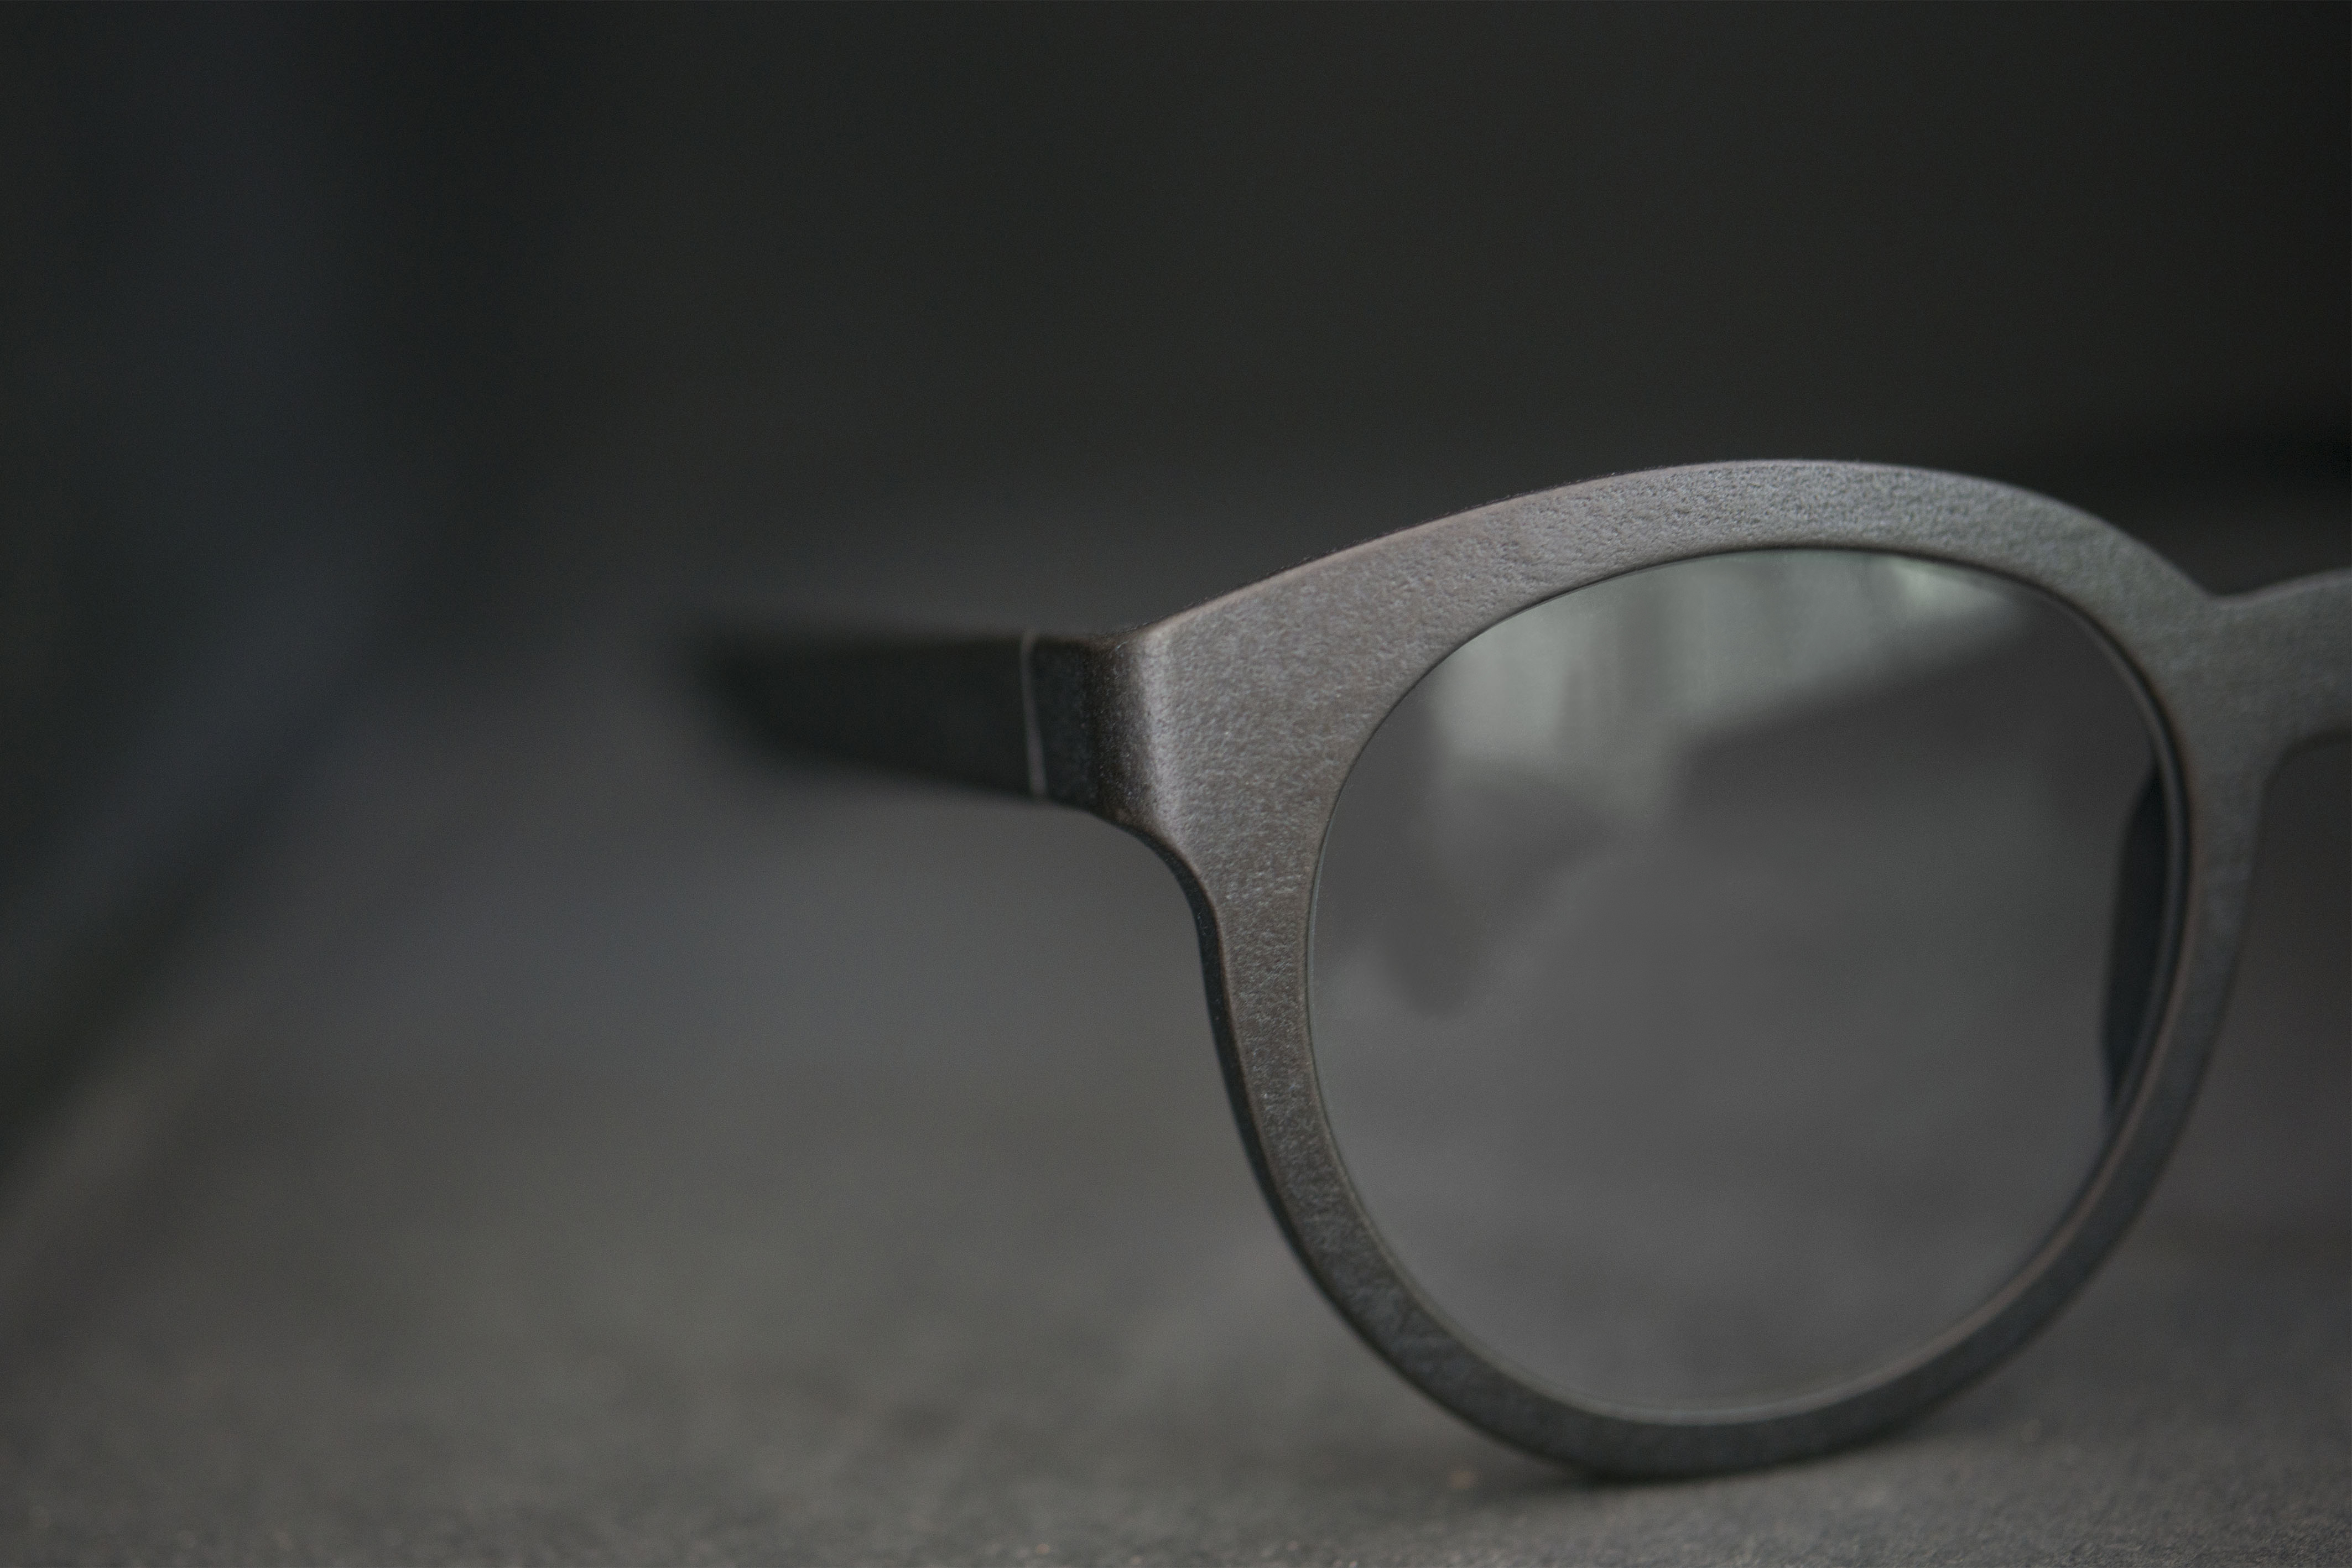 rivenditore online 5faad 8b7a4 Special sunglasses: Highly tactile COLLEZIONI